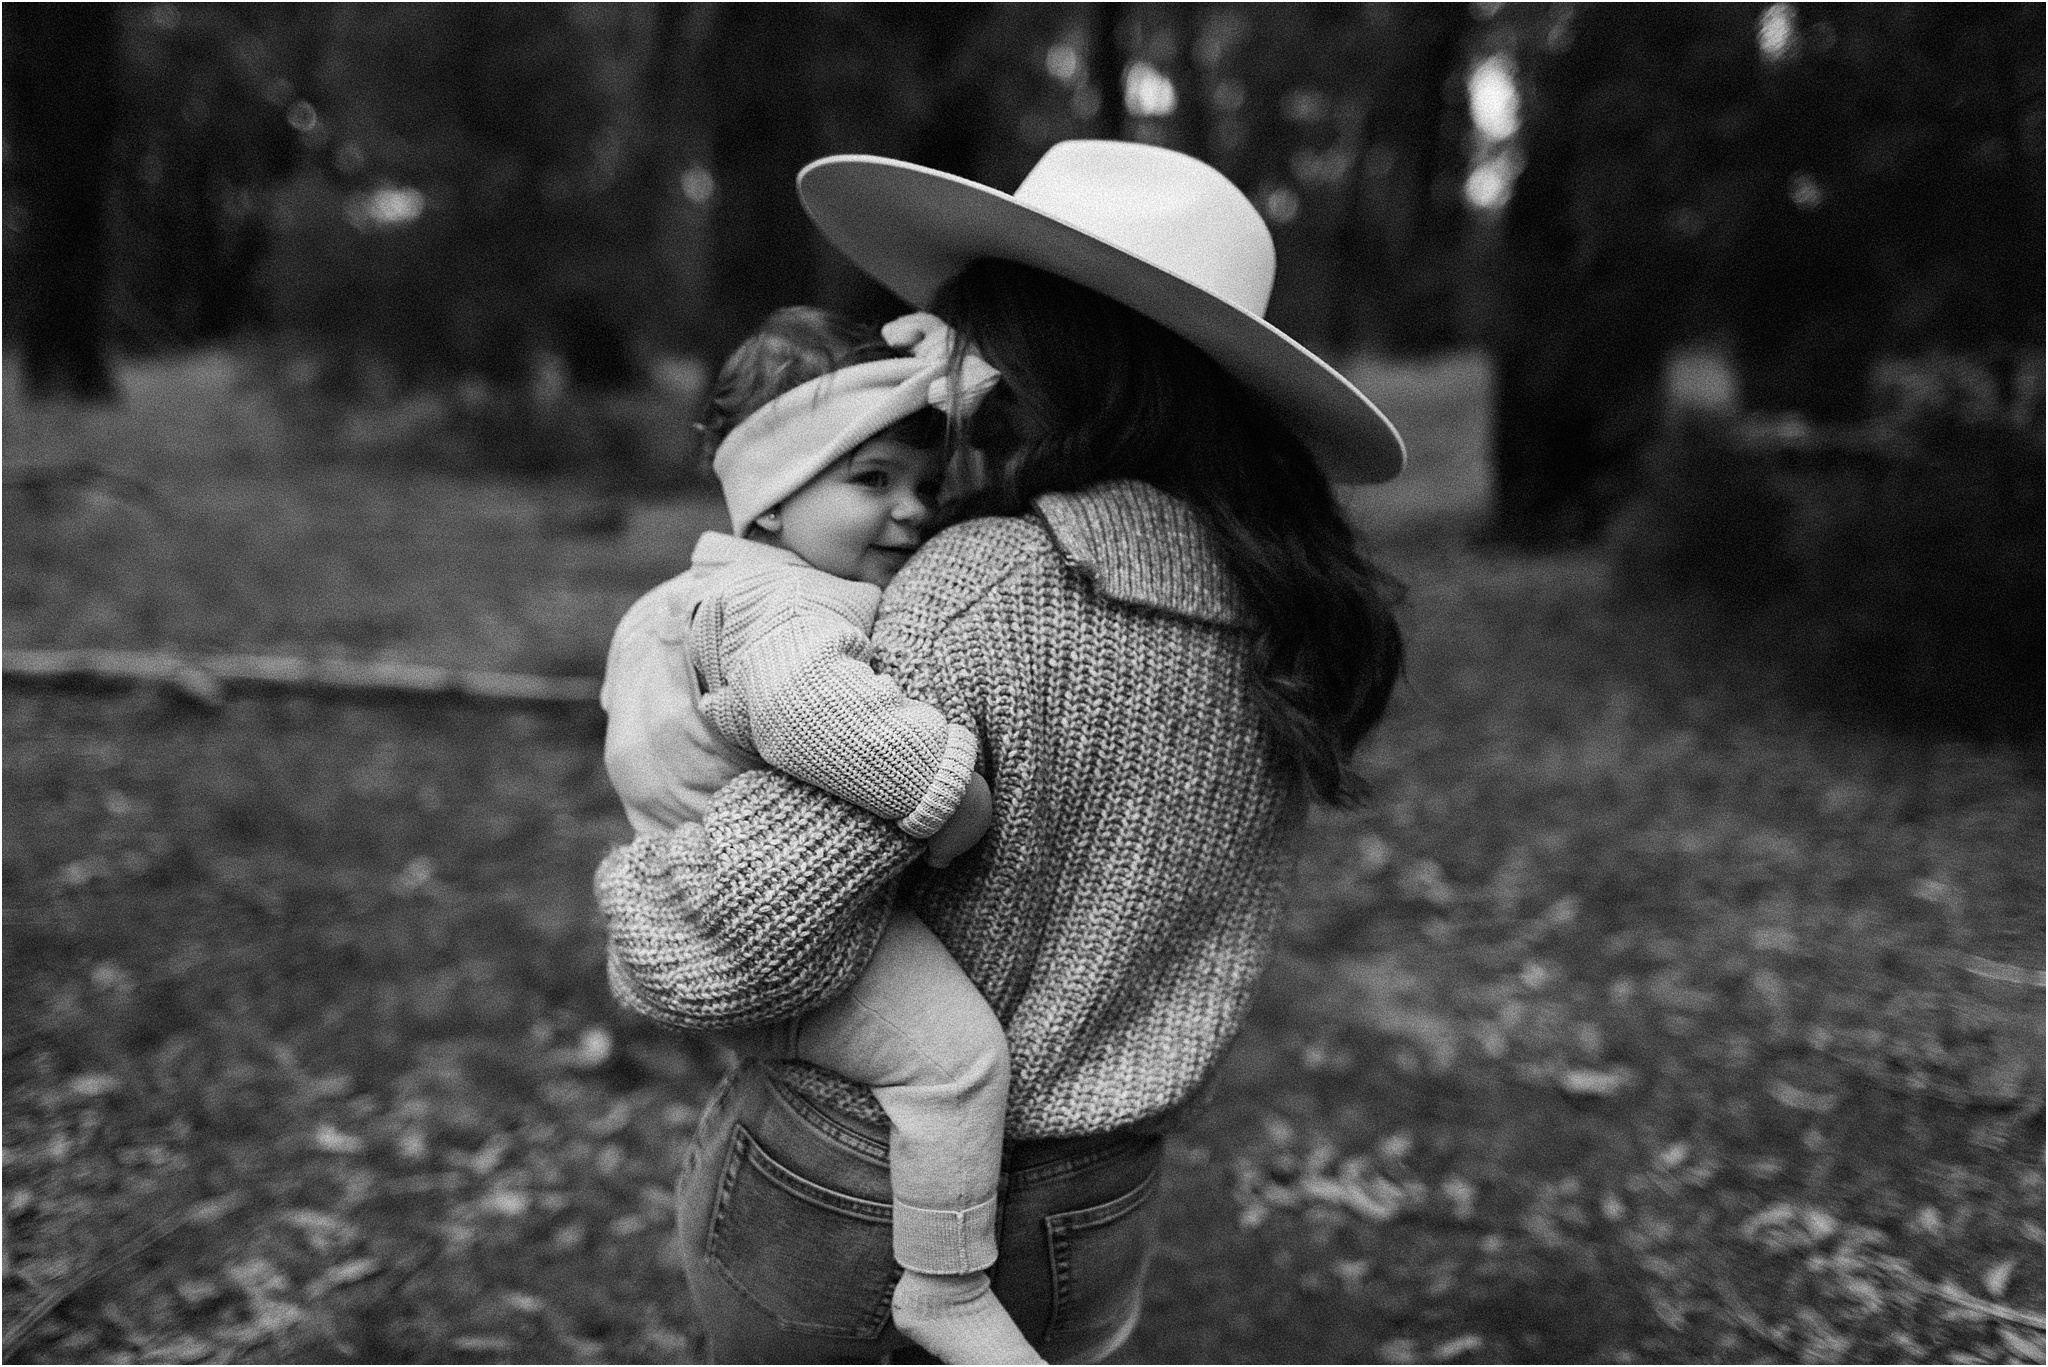 A black and white portrait of Mum holding baby, walsking away from the camera